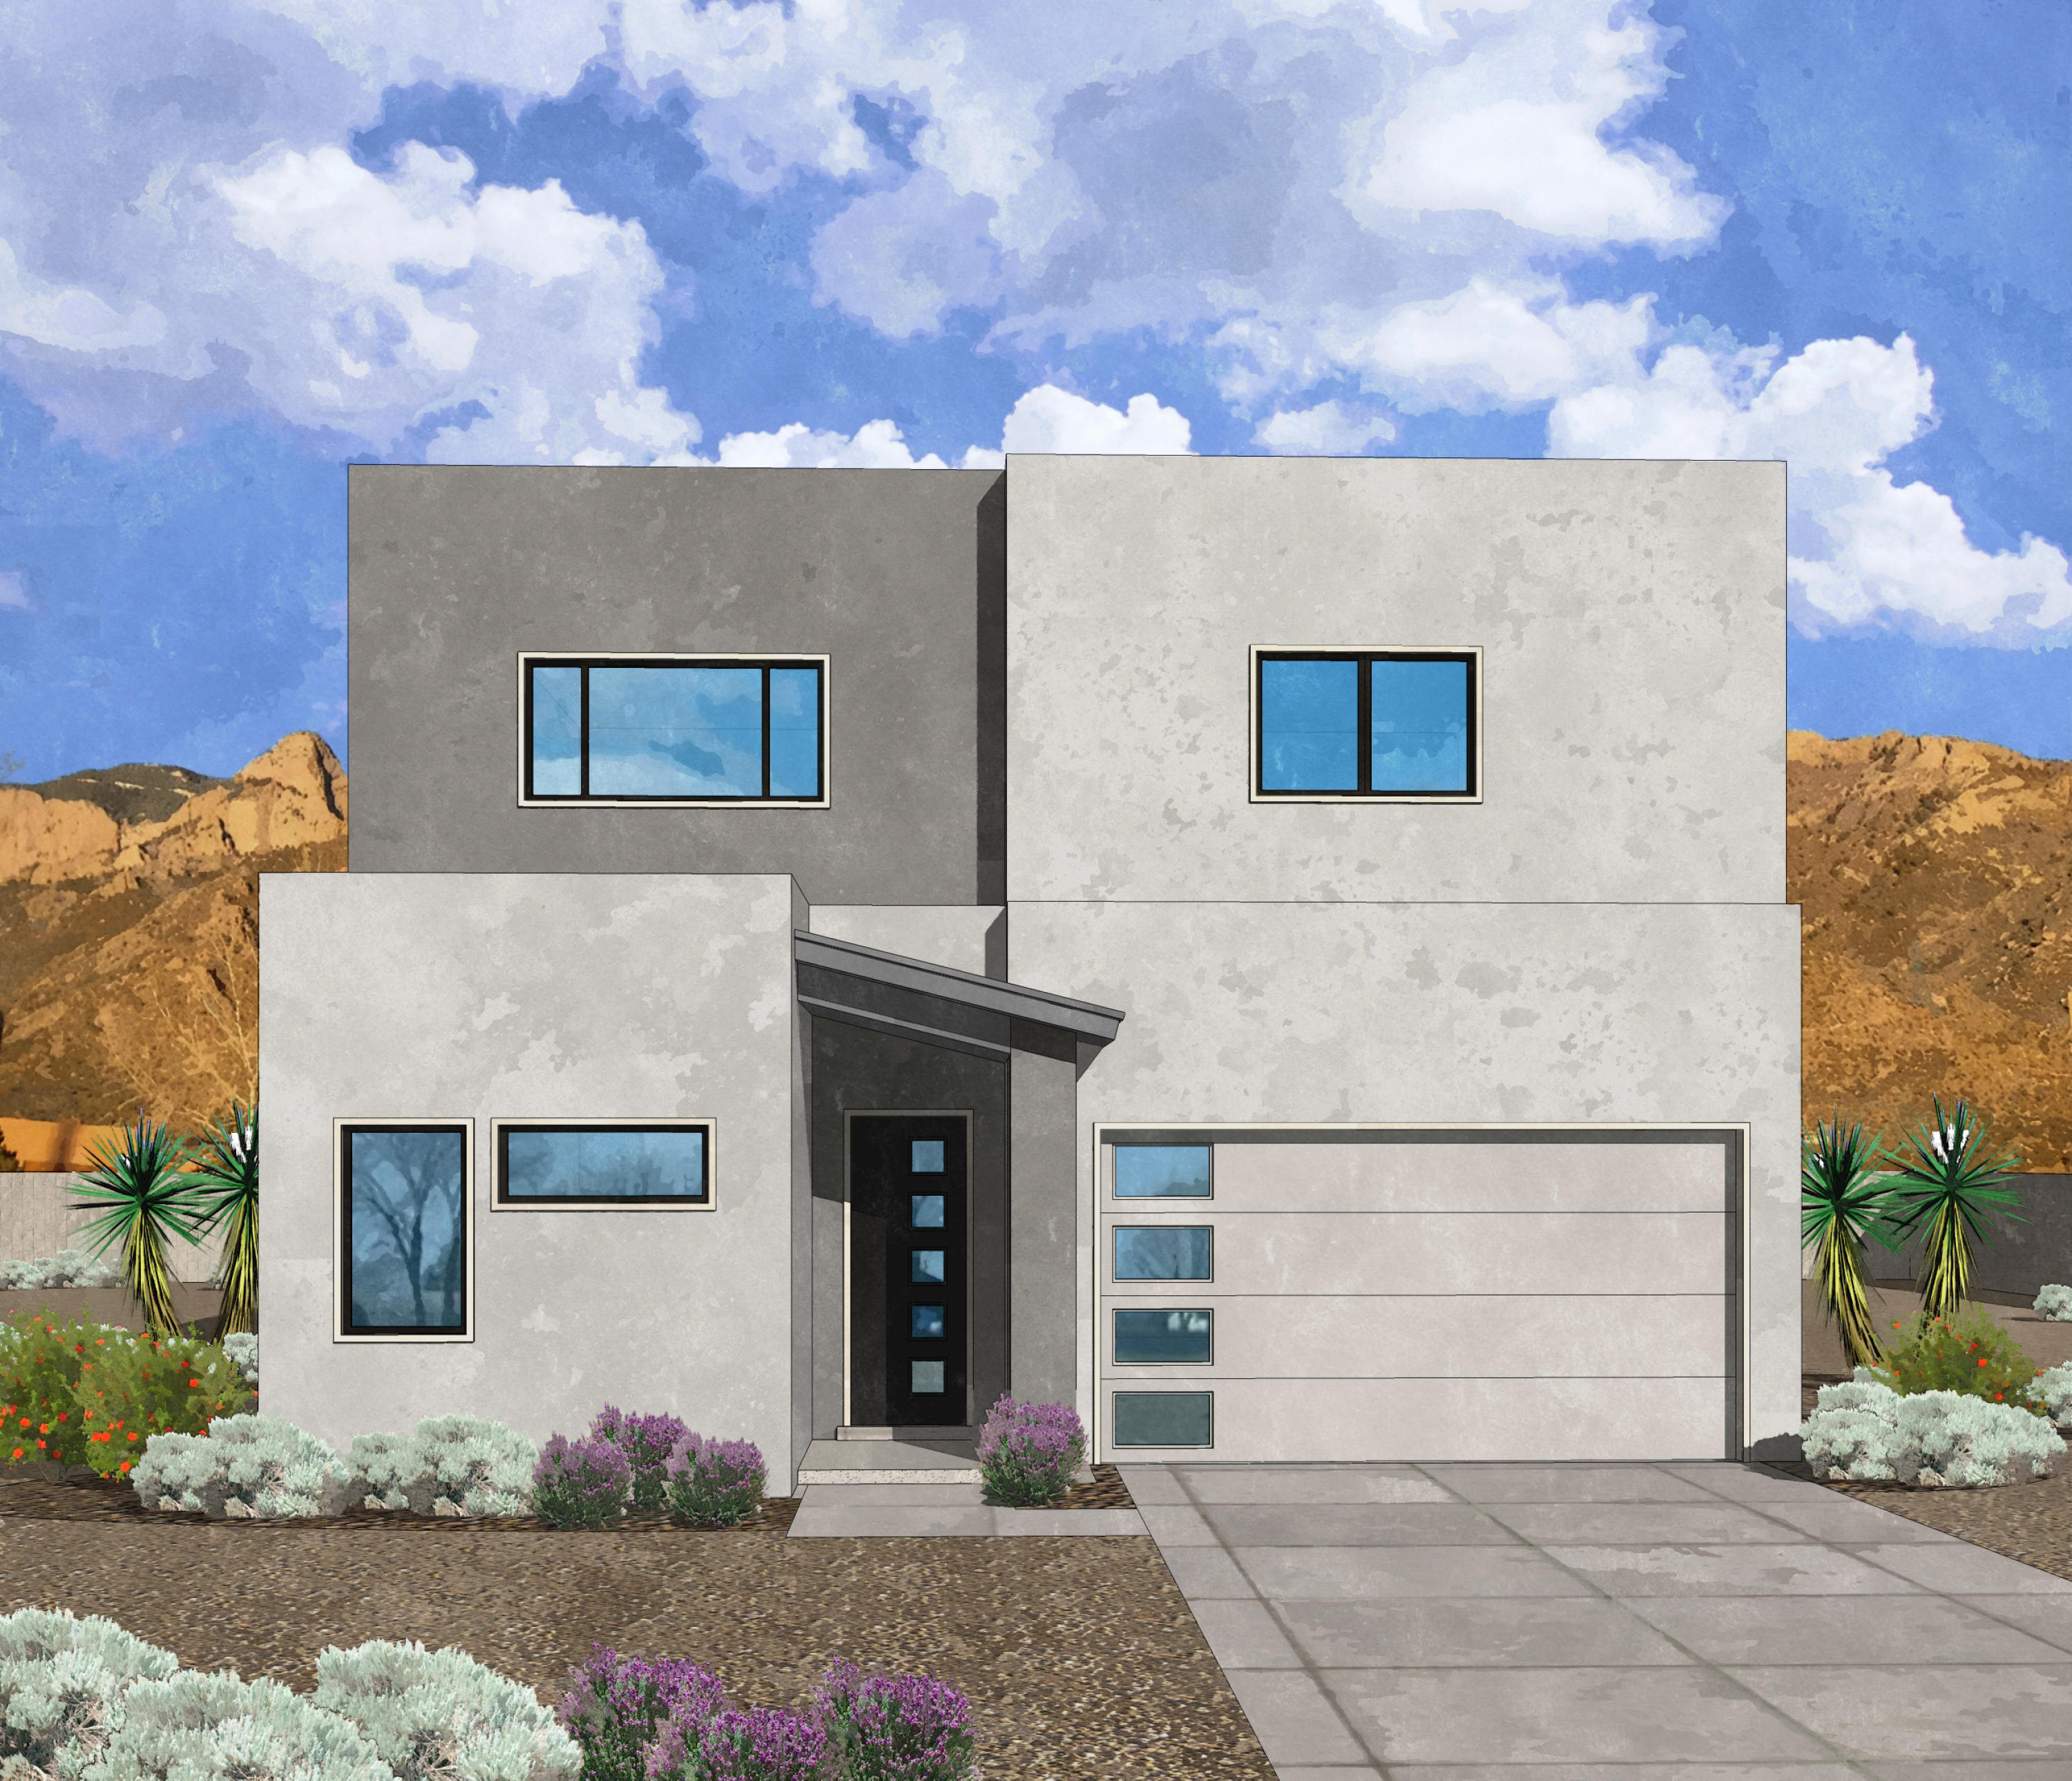 Westway Homes presents our Nugget floor plan. This amazing home features 4 bedrooms and 2.5 bathrooms. The open living/kitchen/dining space is a large family dream come true. The kitchen features our Bosch gourmet appliance package and designer cabinetry. The kitchen also features a giant walk in pantry (approx 100 sq ft). Upstairs is a giant master suite and huge loft area with views towards the bosque and the mountains. This home will be ready to move in to in June, 2021.